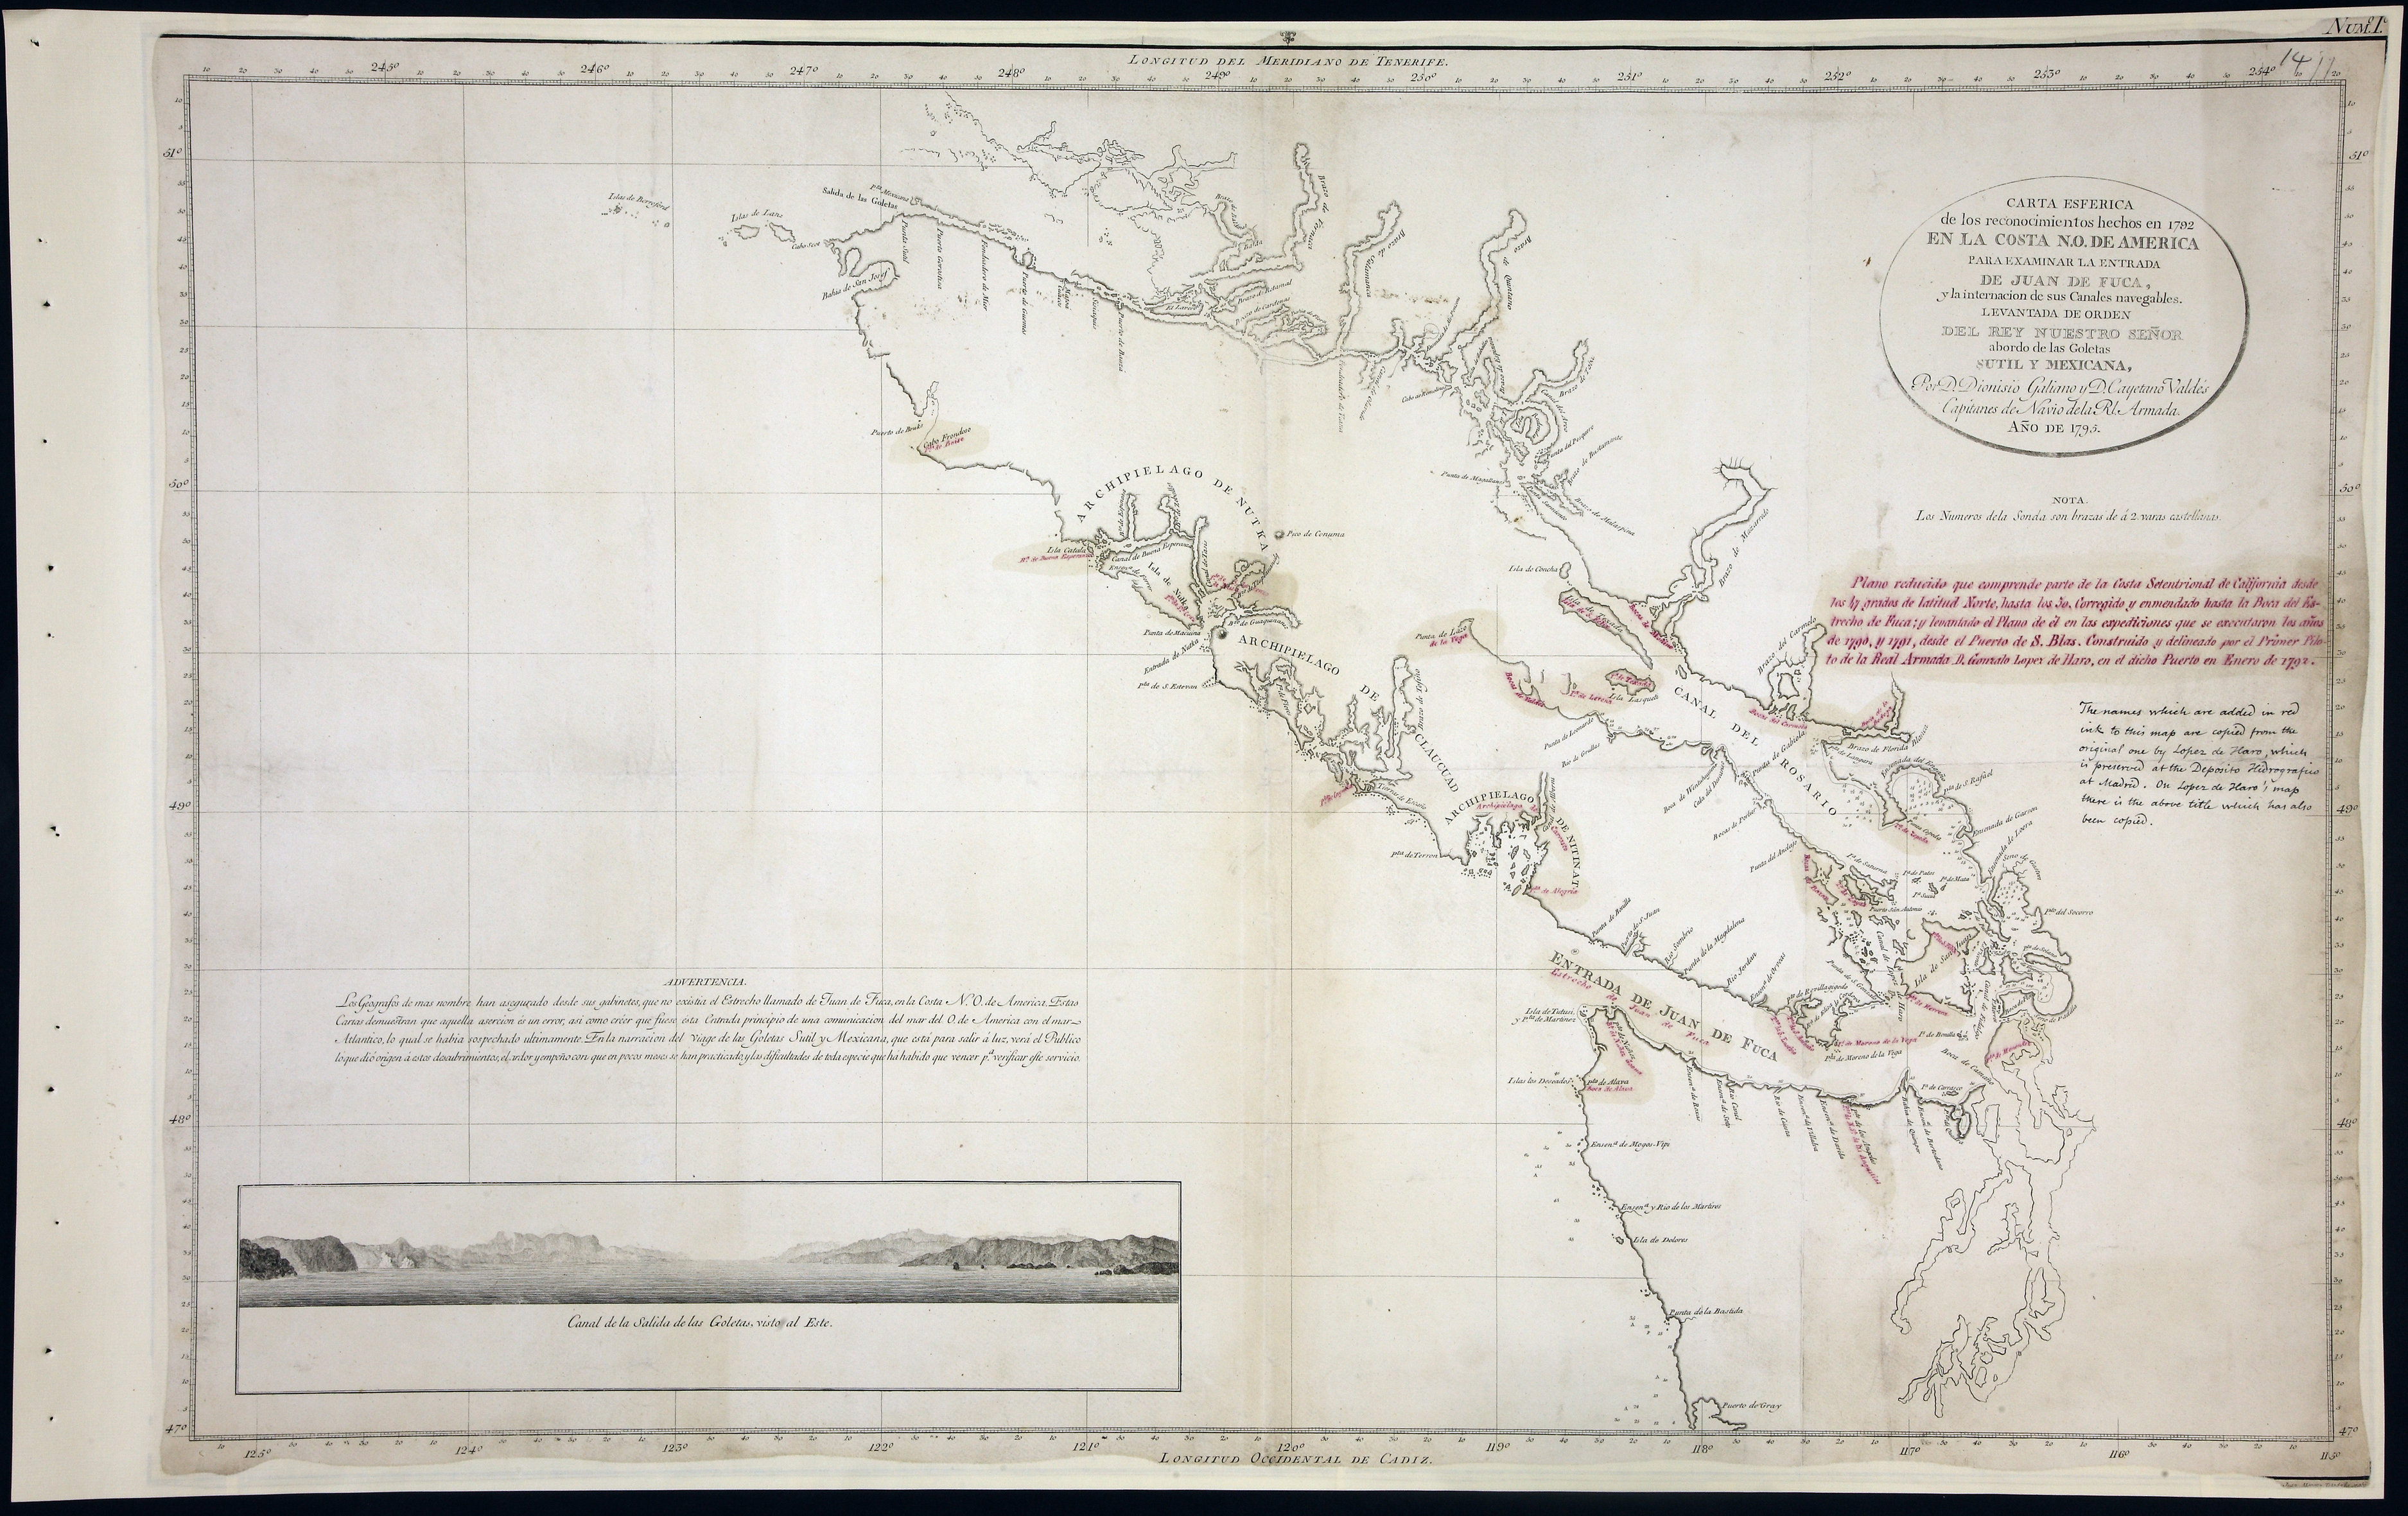 San Juan Water Boundary (Arbitration) : list of maps sent to Admiral Prevost at Berlin on the 12th June 1872 [map 15]